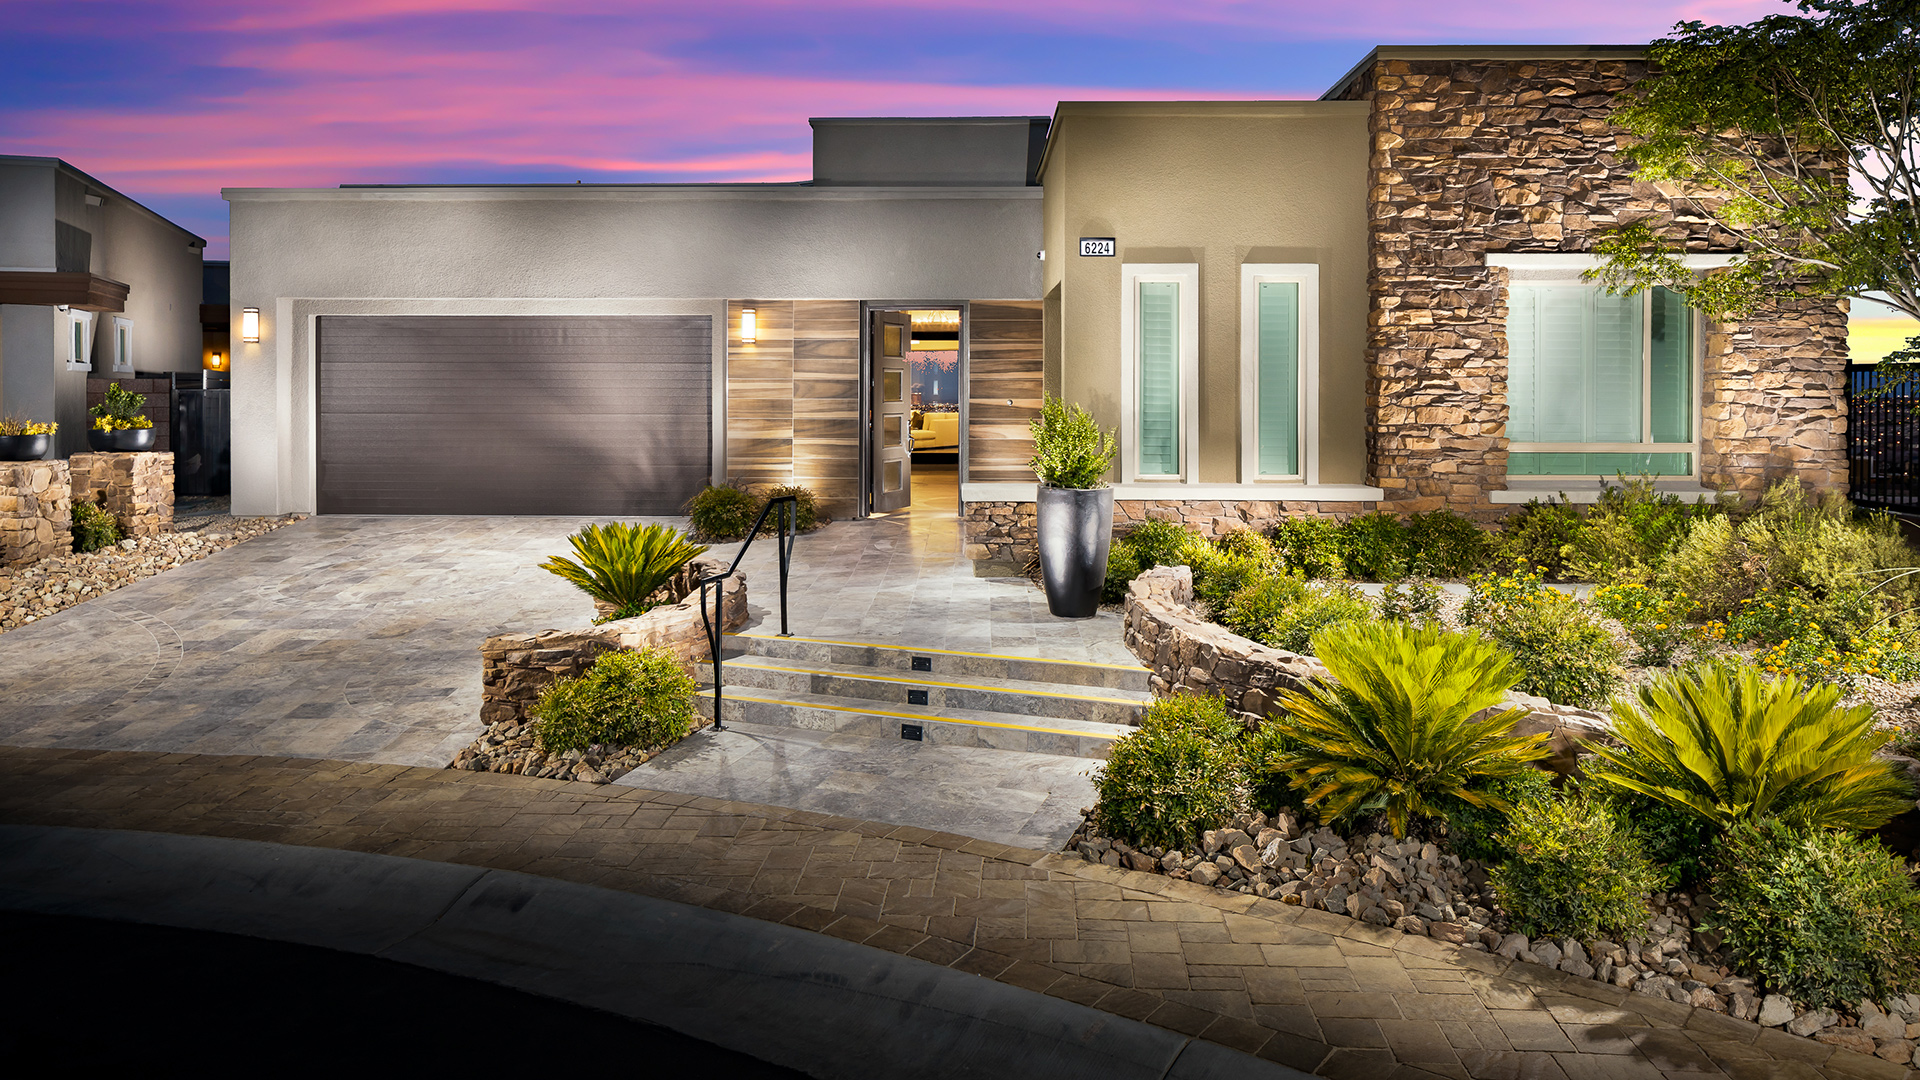 Las vegas nv new homes for sale ironwood for Ironwood homes